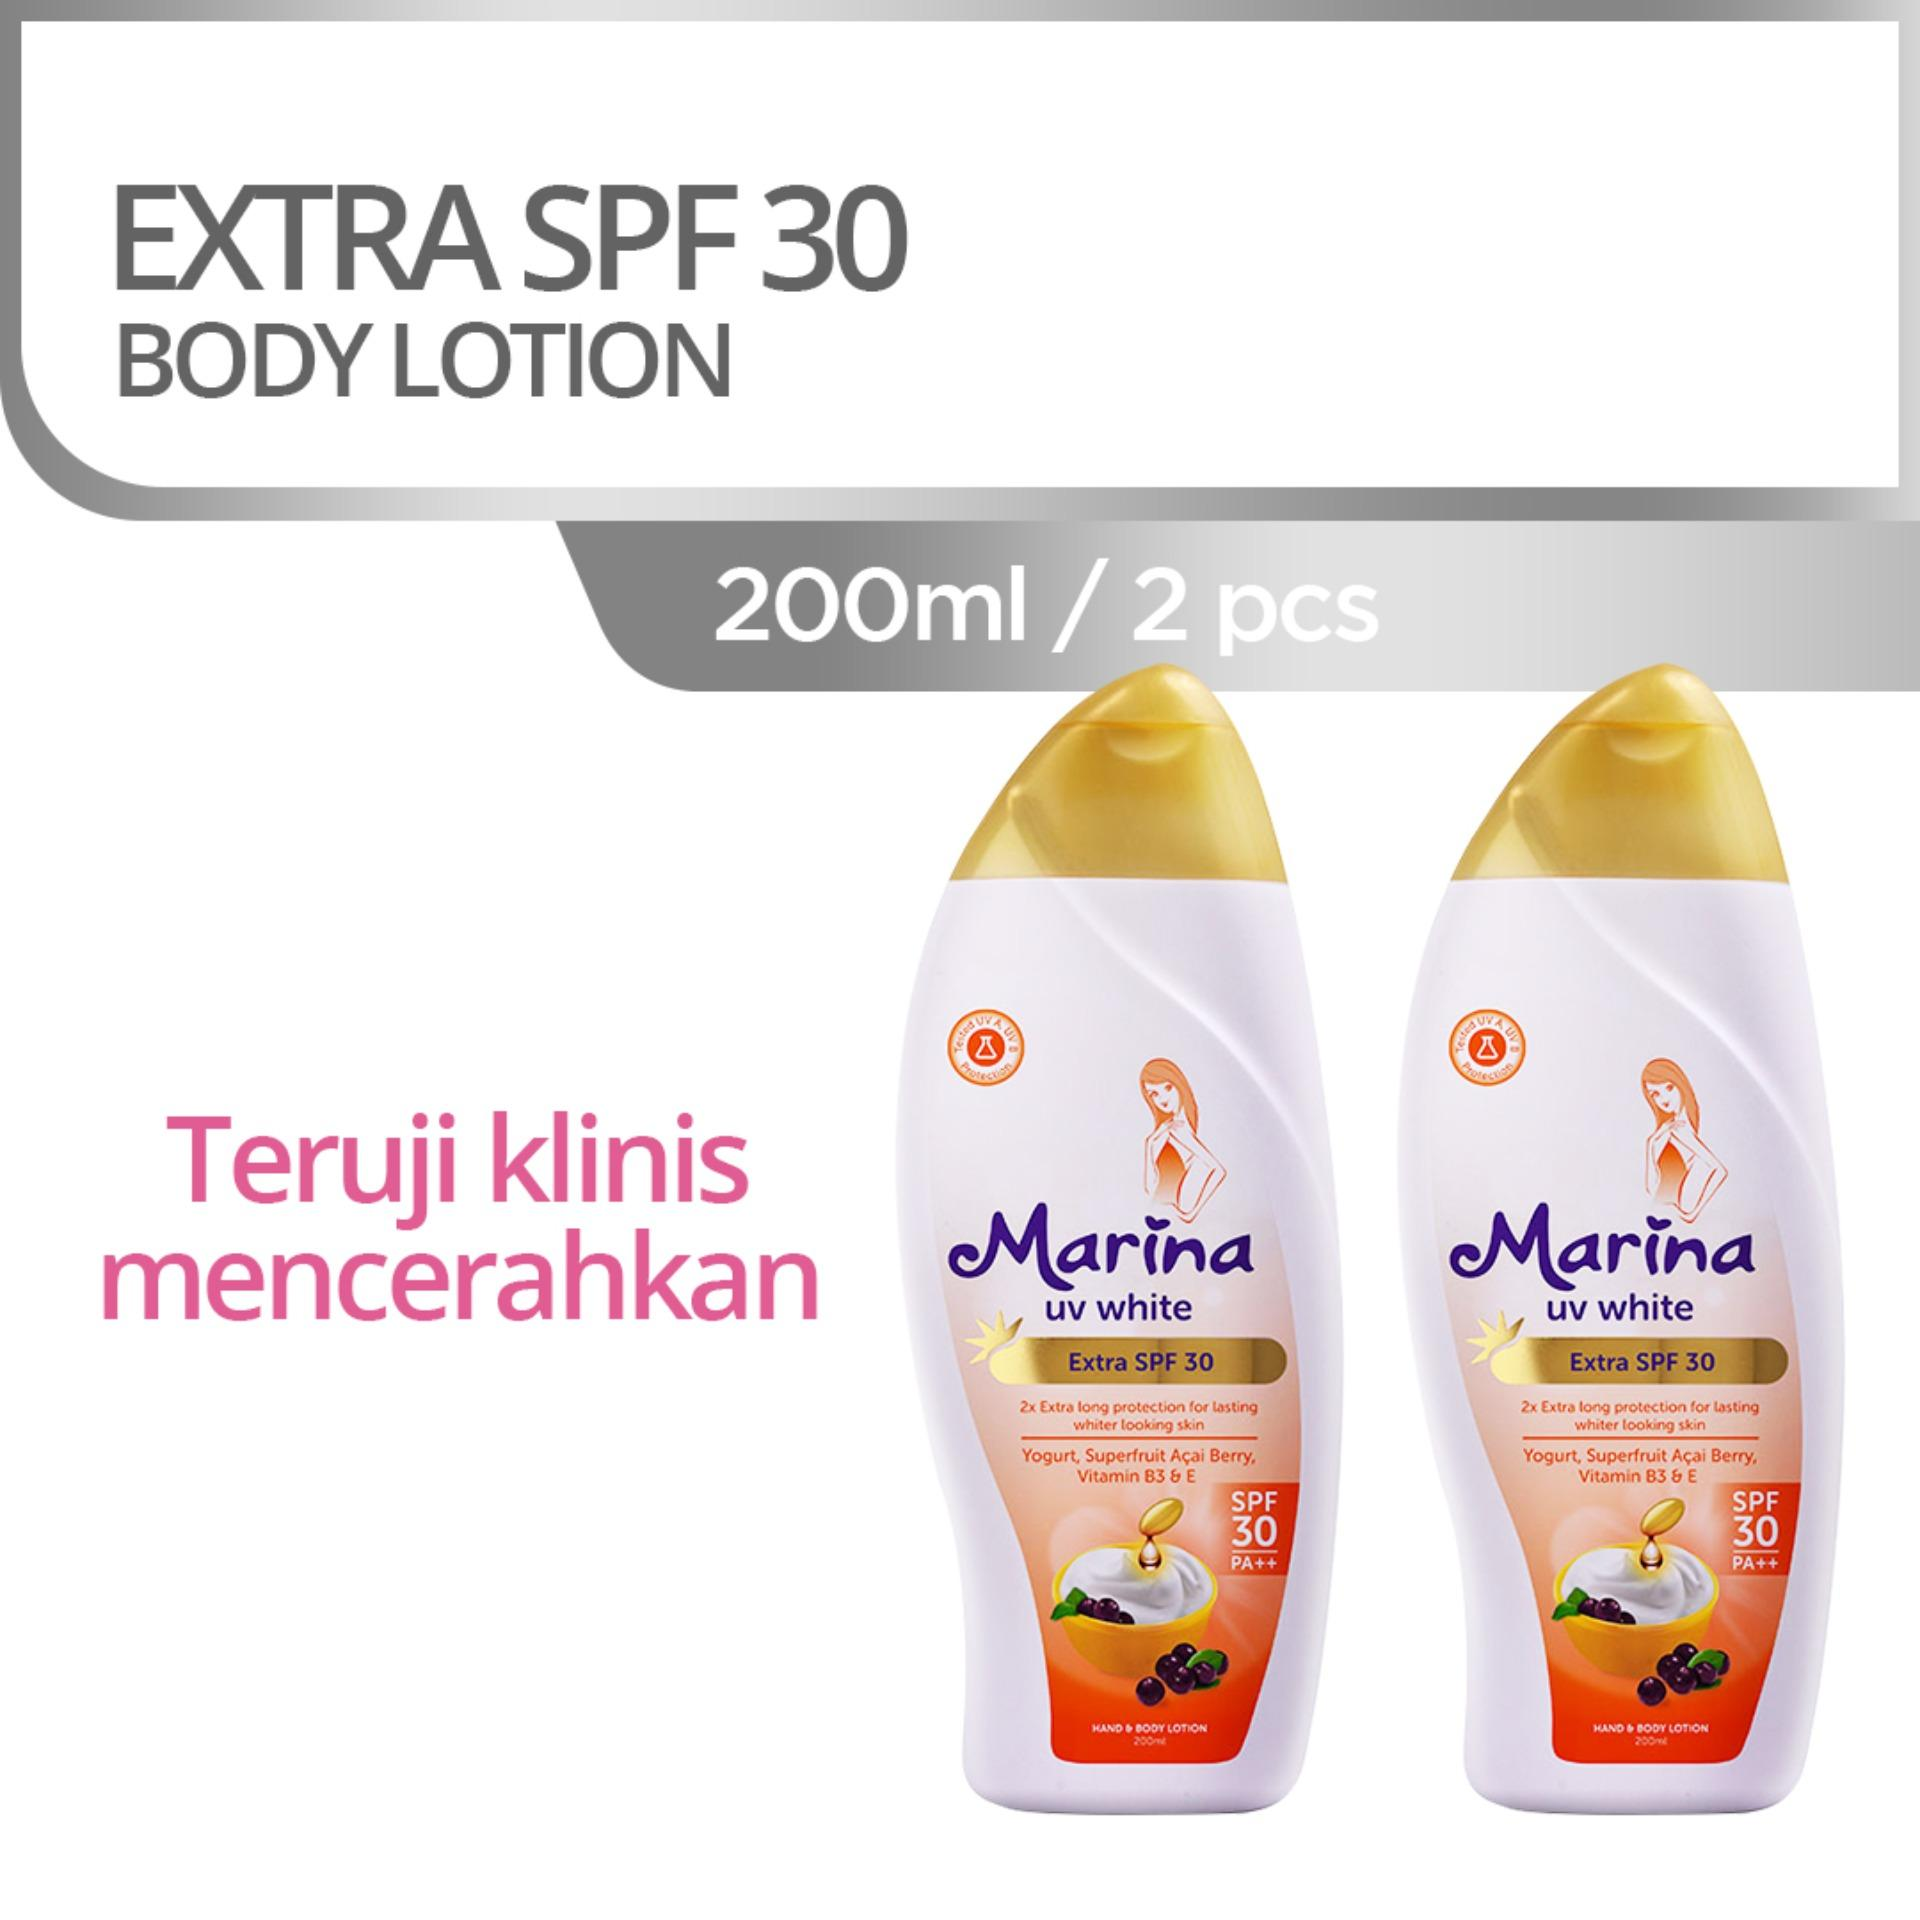 Buy Sell Cheapest Dolity 2pcs 200ml Best Quality Product Deals Durex Play Vibration Ring Free Kondom Ribbed Isi 3 Marina Uv White Extra Spf30 Hand And Body Lotion 200 Ml 2 Pcs